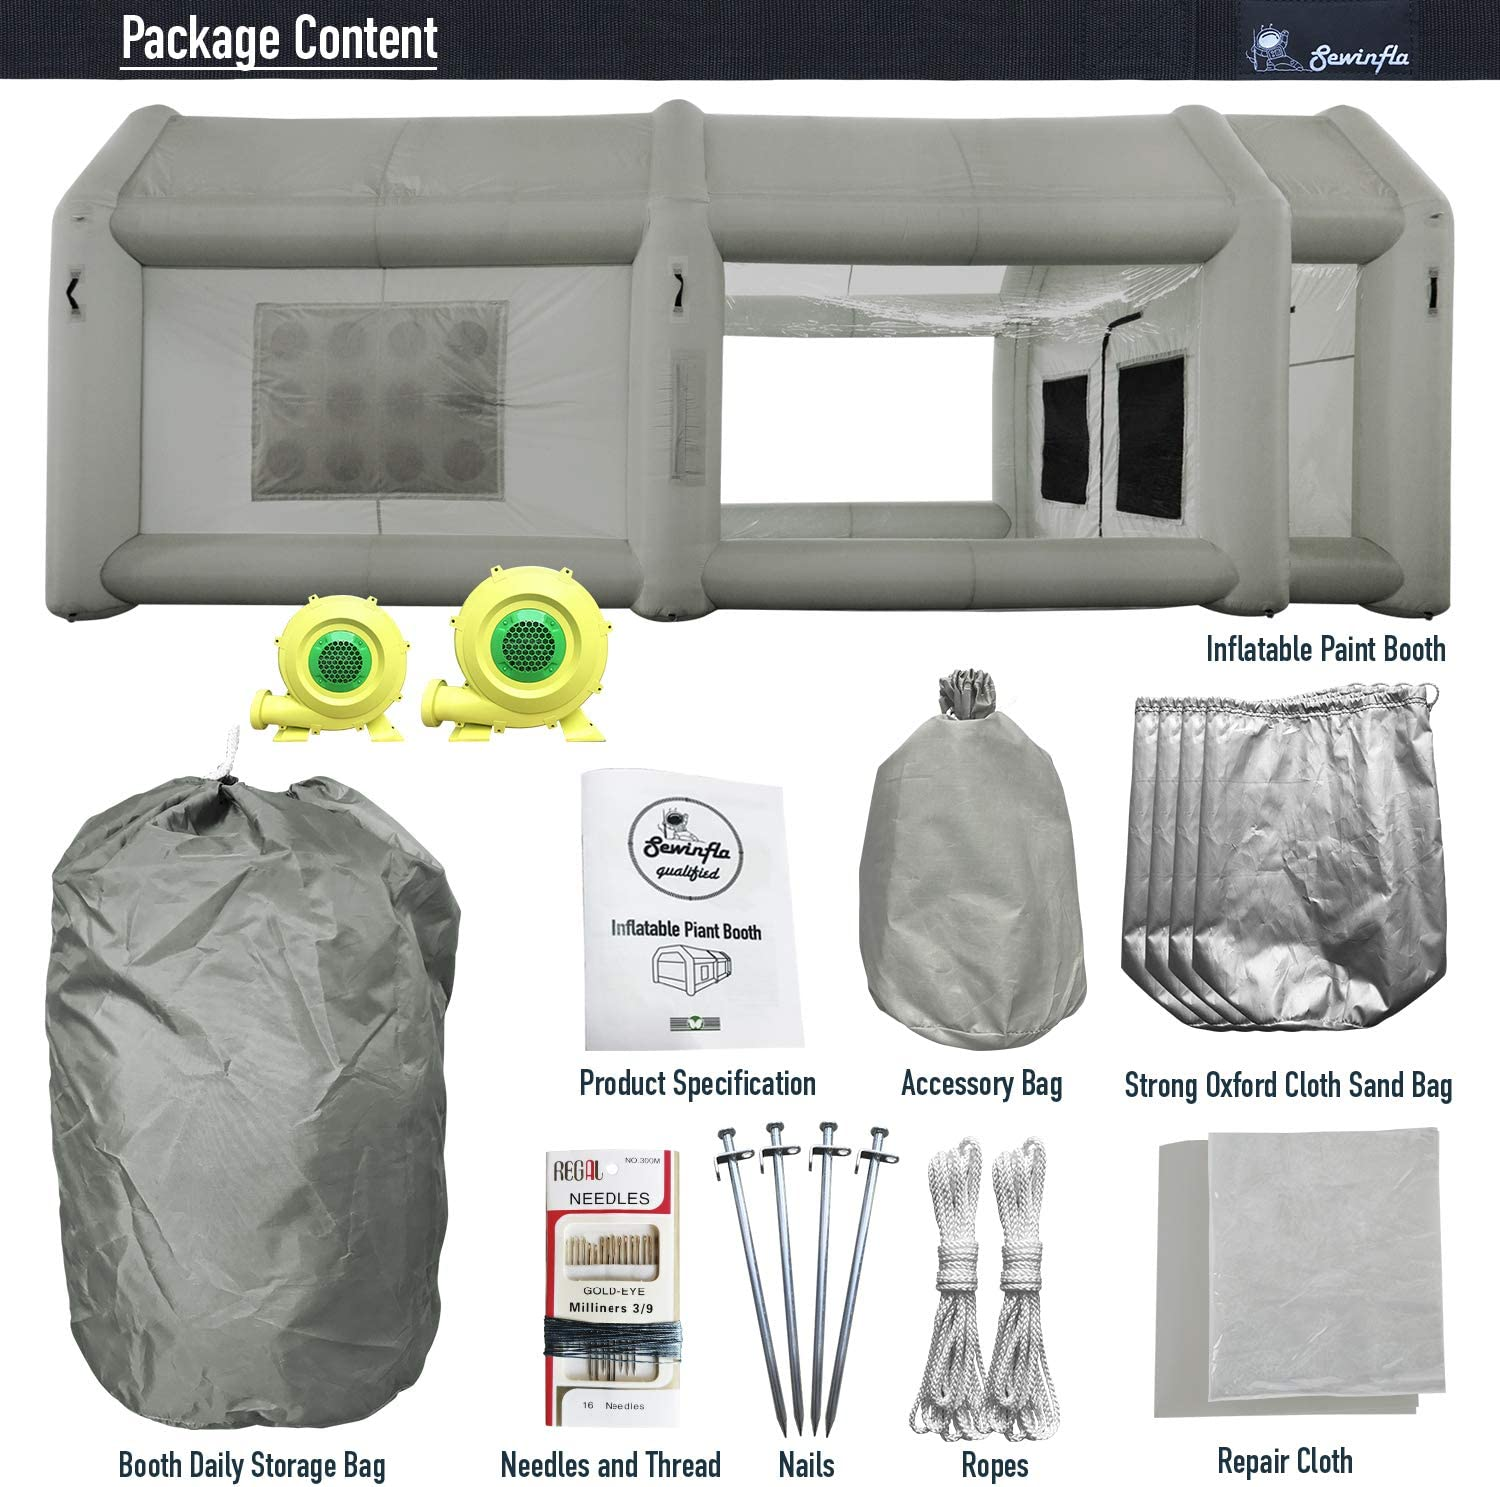 Inflatable Paint Booth 23x13x8.5Ft with Blower SEWINFLA Inflatable Spray Booth Portable Car Painting Booth Tent for Car Garage Upgrade More Durable with Air Filter System Camouflage